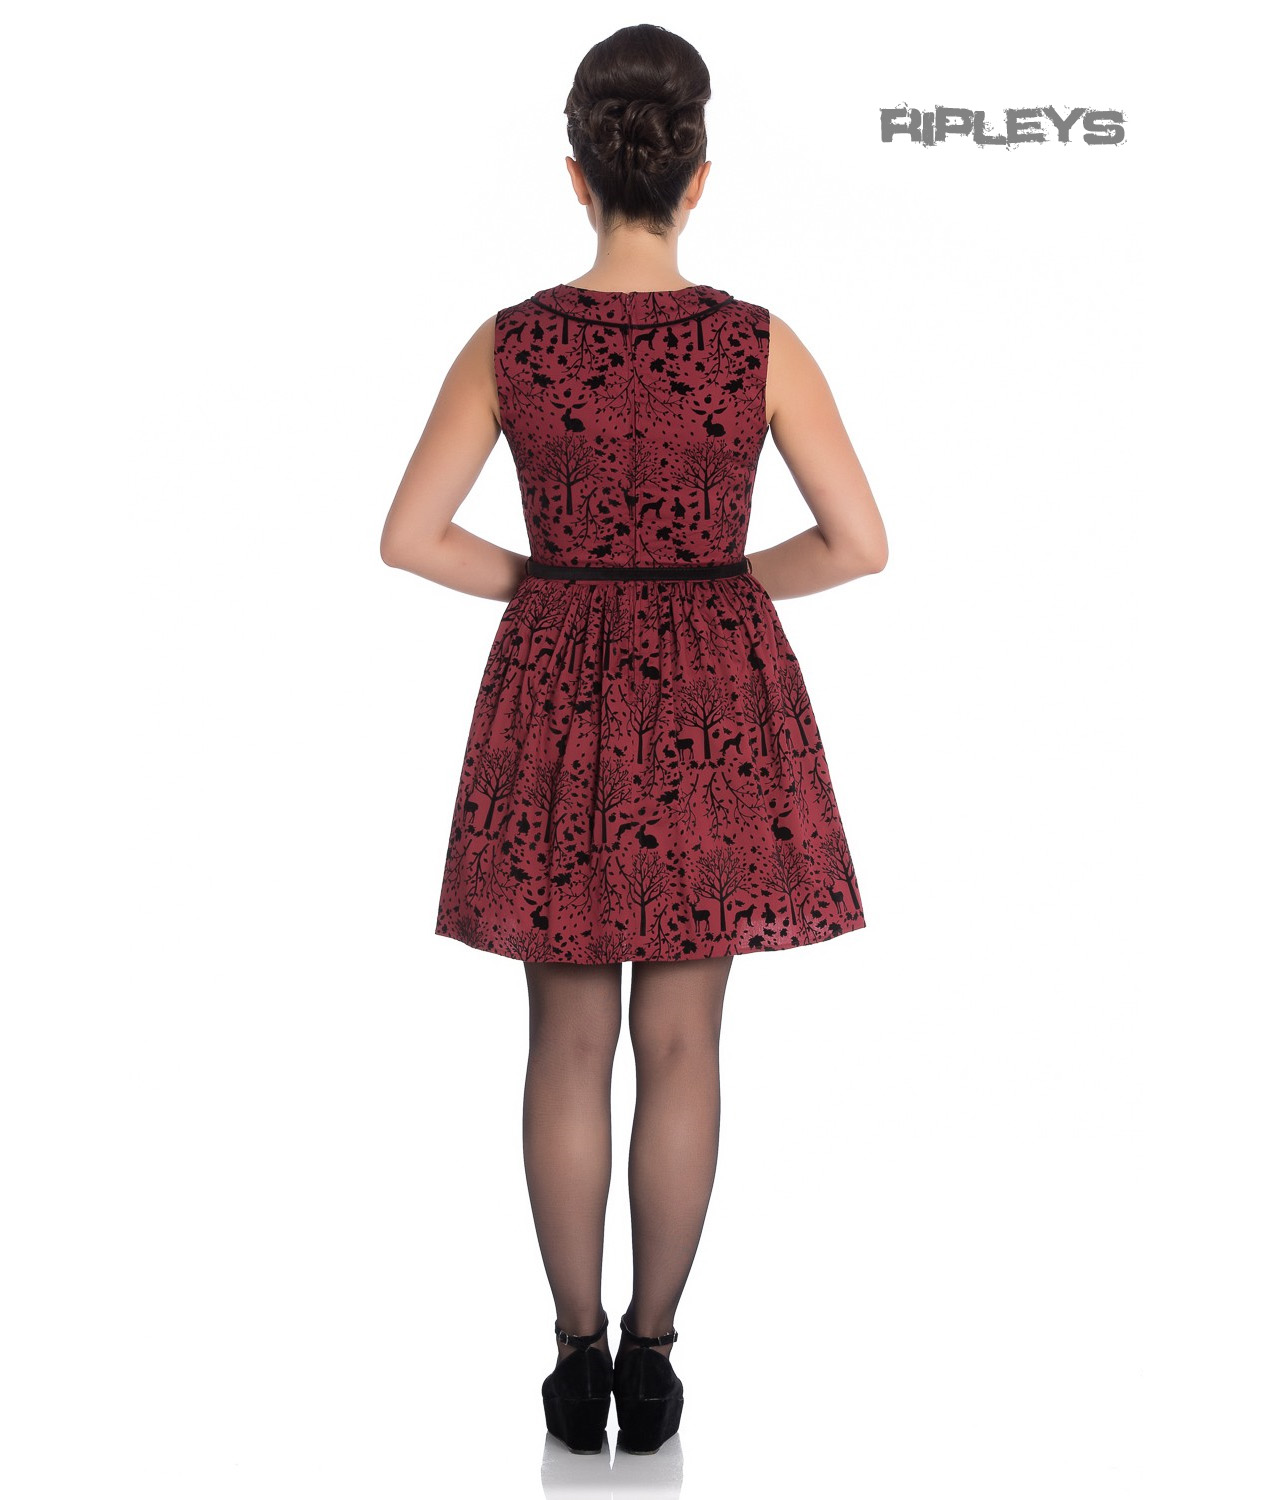 Hell-Bunny-50s-Mini-Skater-Dress-Woodland-Trees-SHERWOOD-Black-Red-All-Sizes thumbnail 8